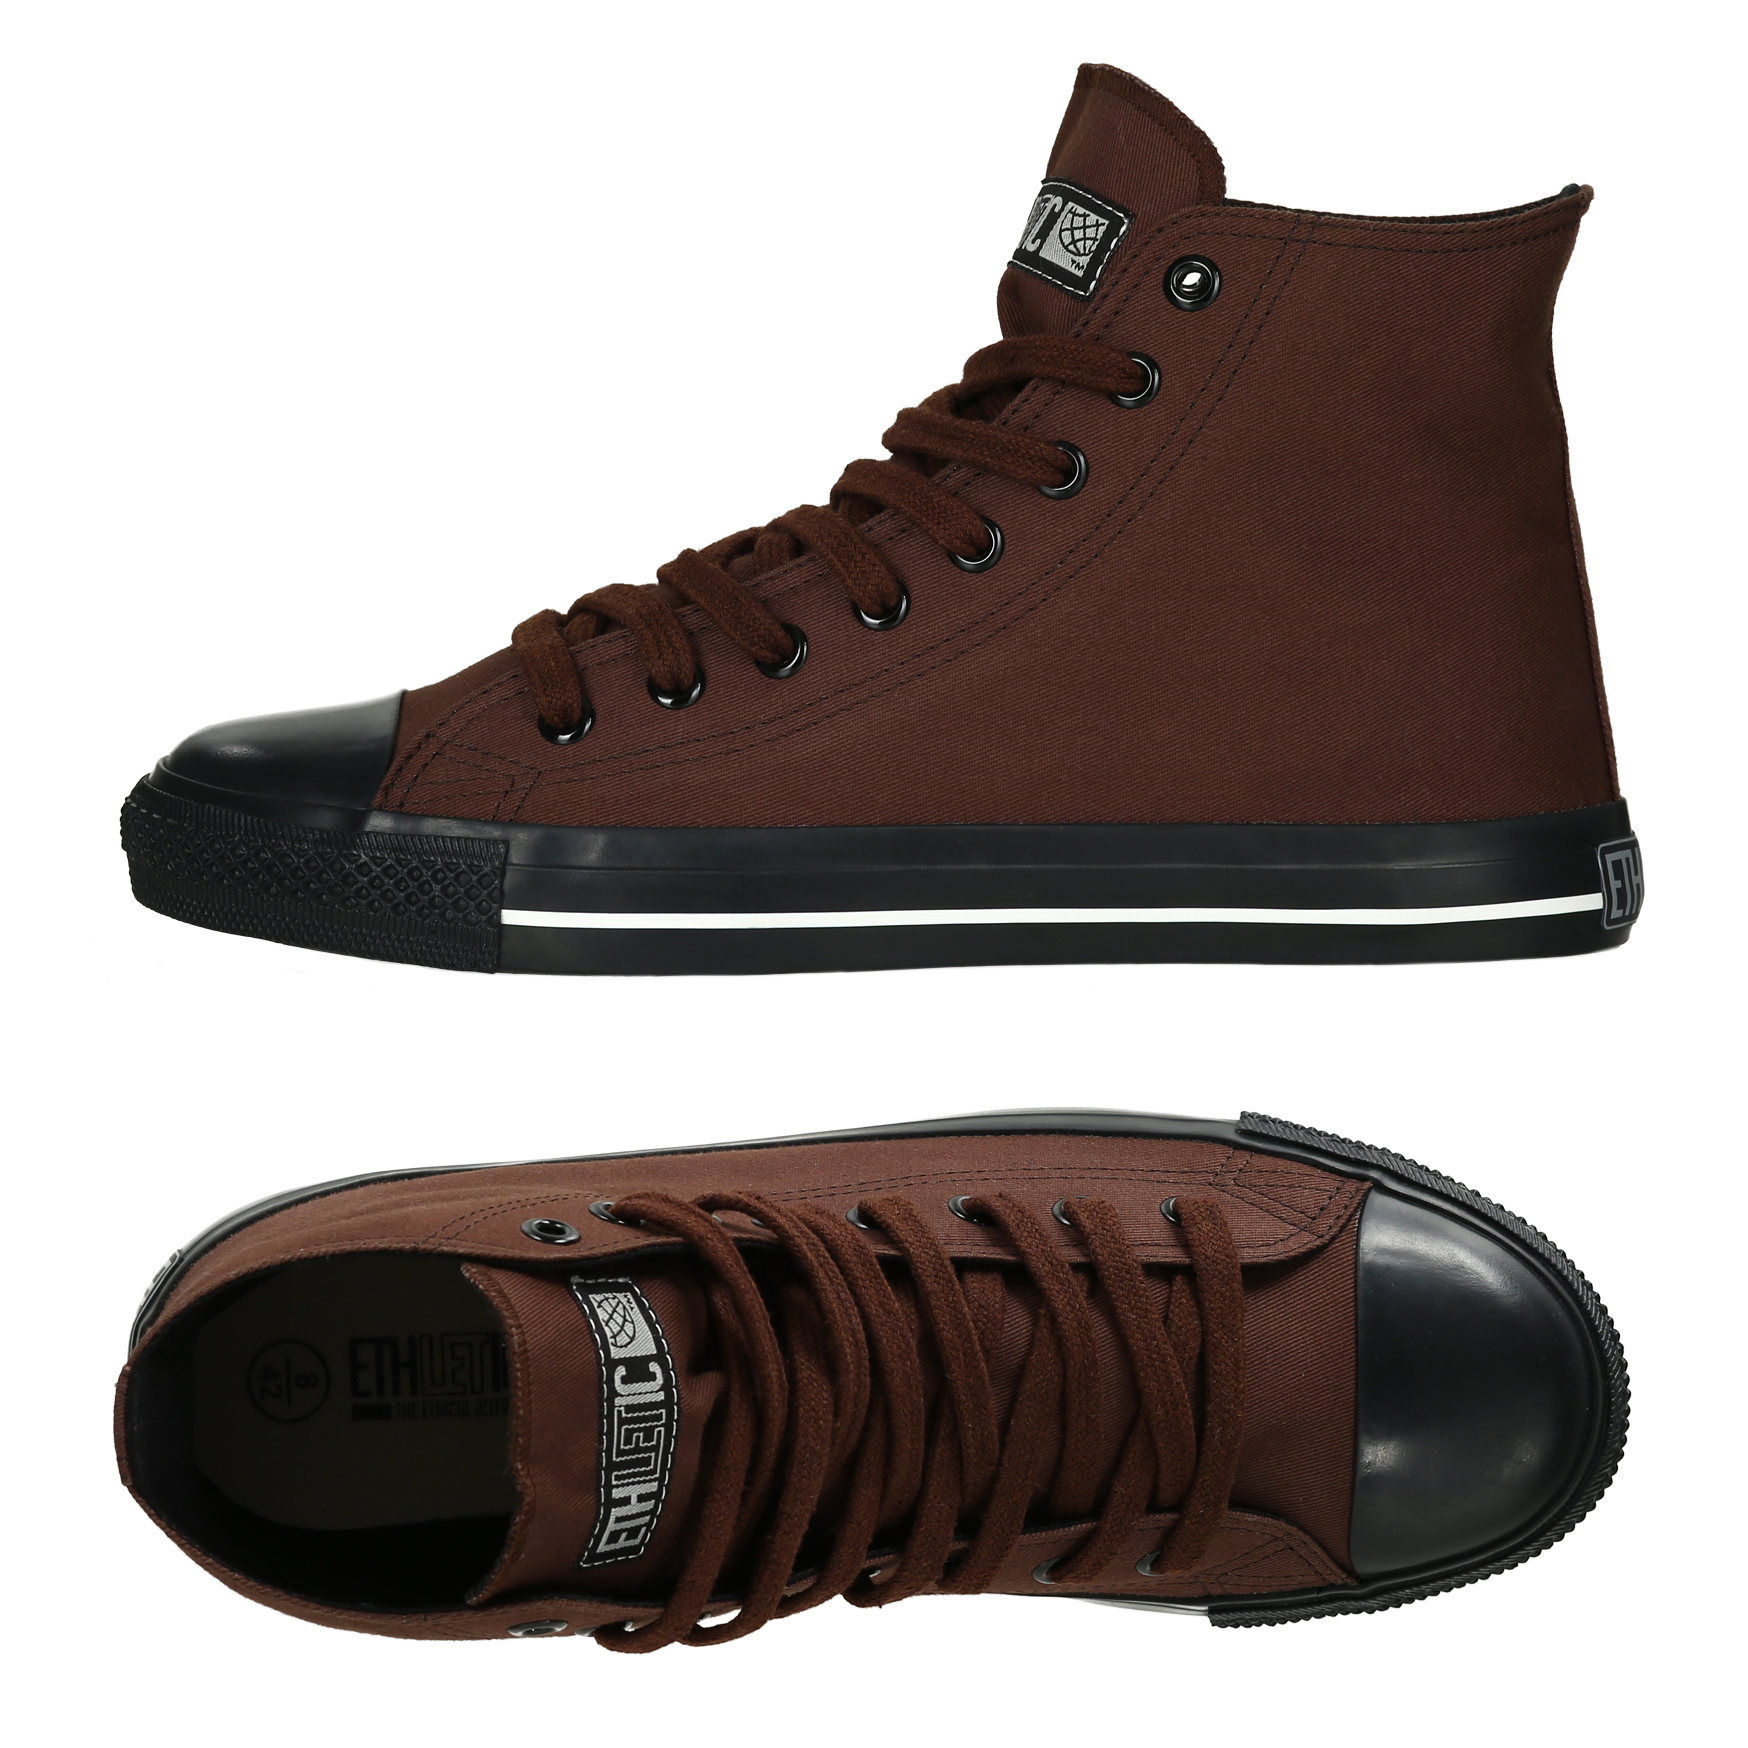 Farbe Nut Ethletic Sneaker Vegan Hicut Collection 17 Farbe Nut Brown